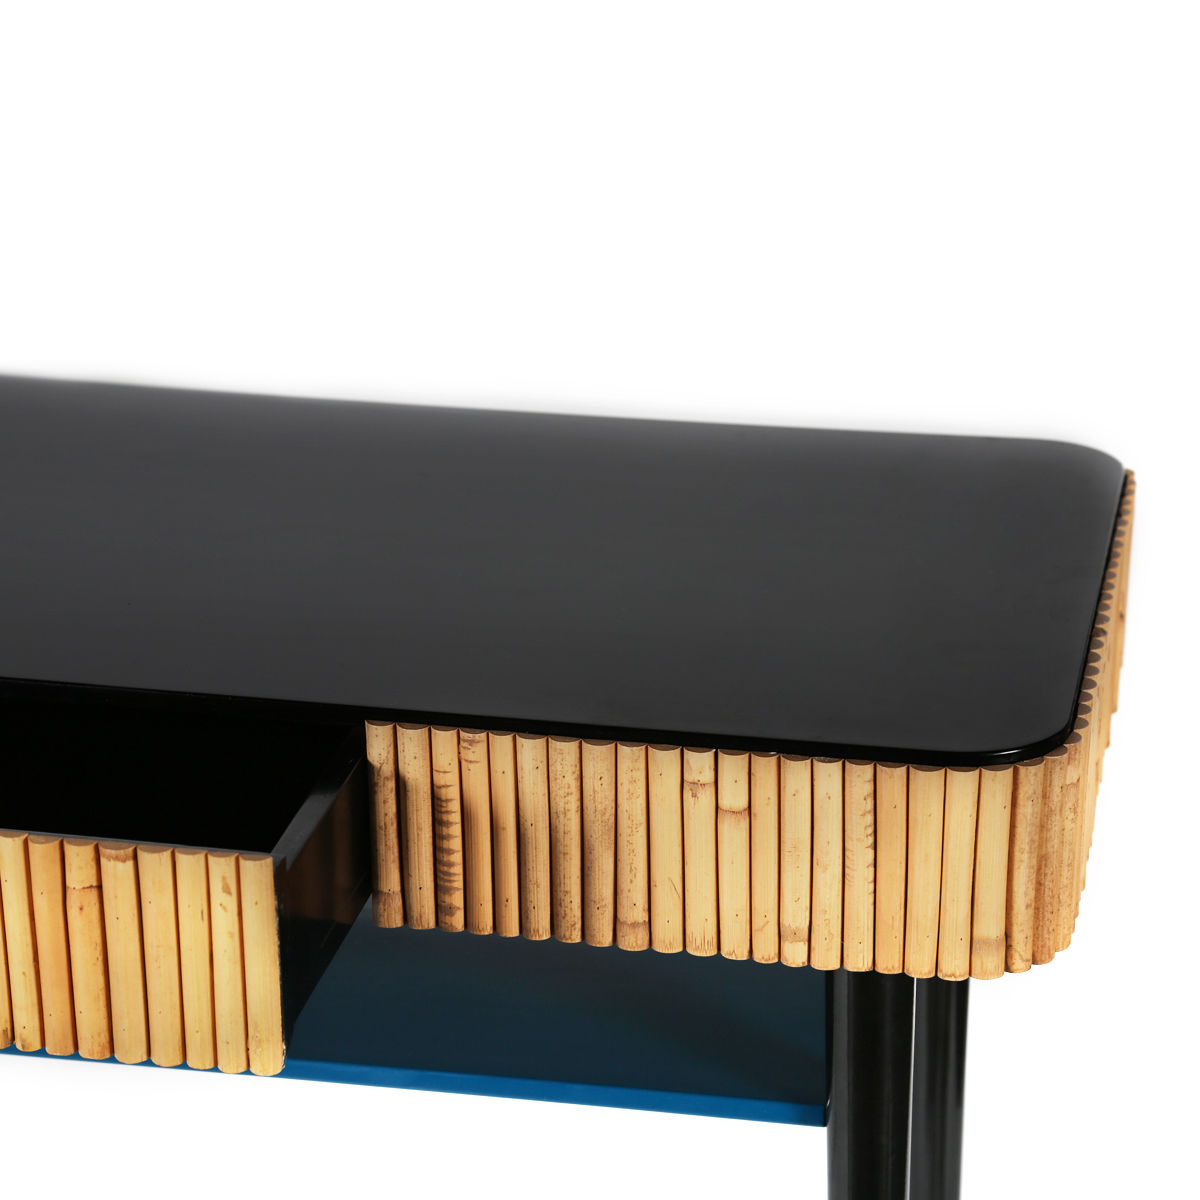 Riviera Console – / Rattan – Drawermaison Sarah Lavoine Regarding Natural Cane Media Console Tables (Gallery 12 of 30)